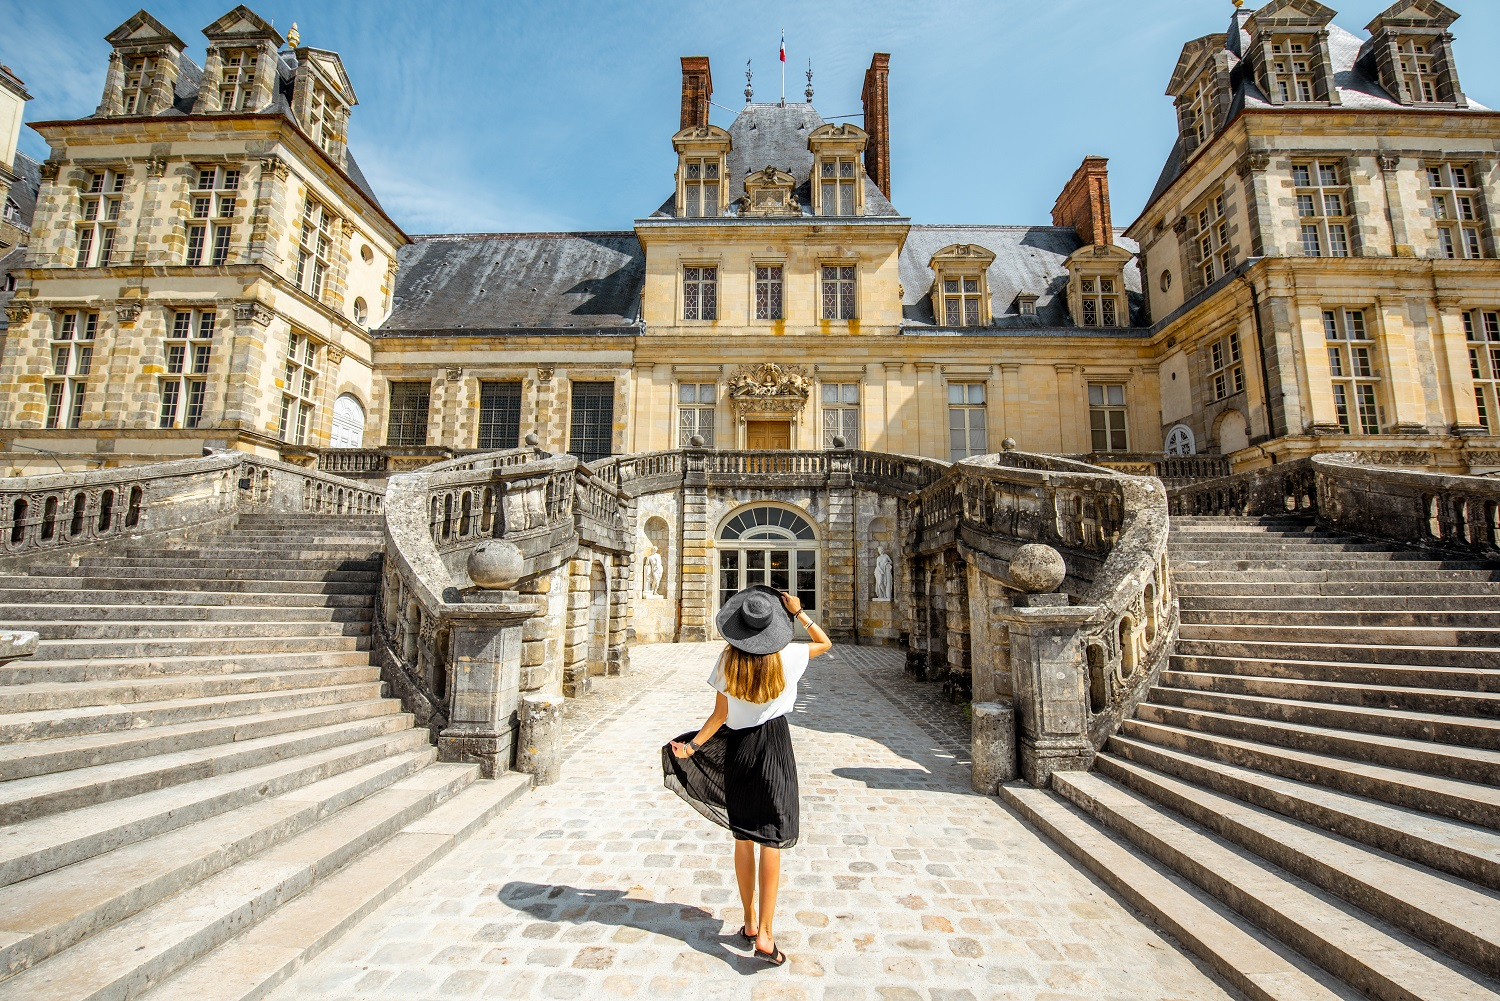 Woman standing back near the beautiful staircase visiting famous Fontainebleau palace in France